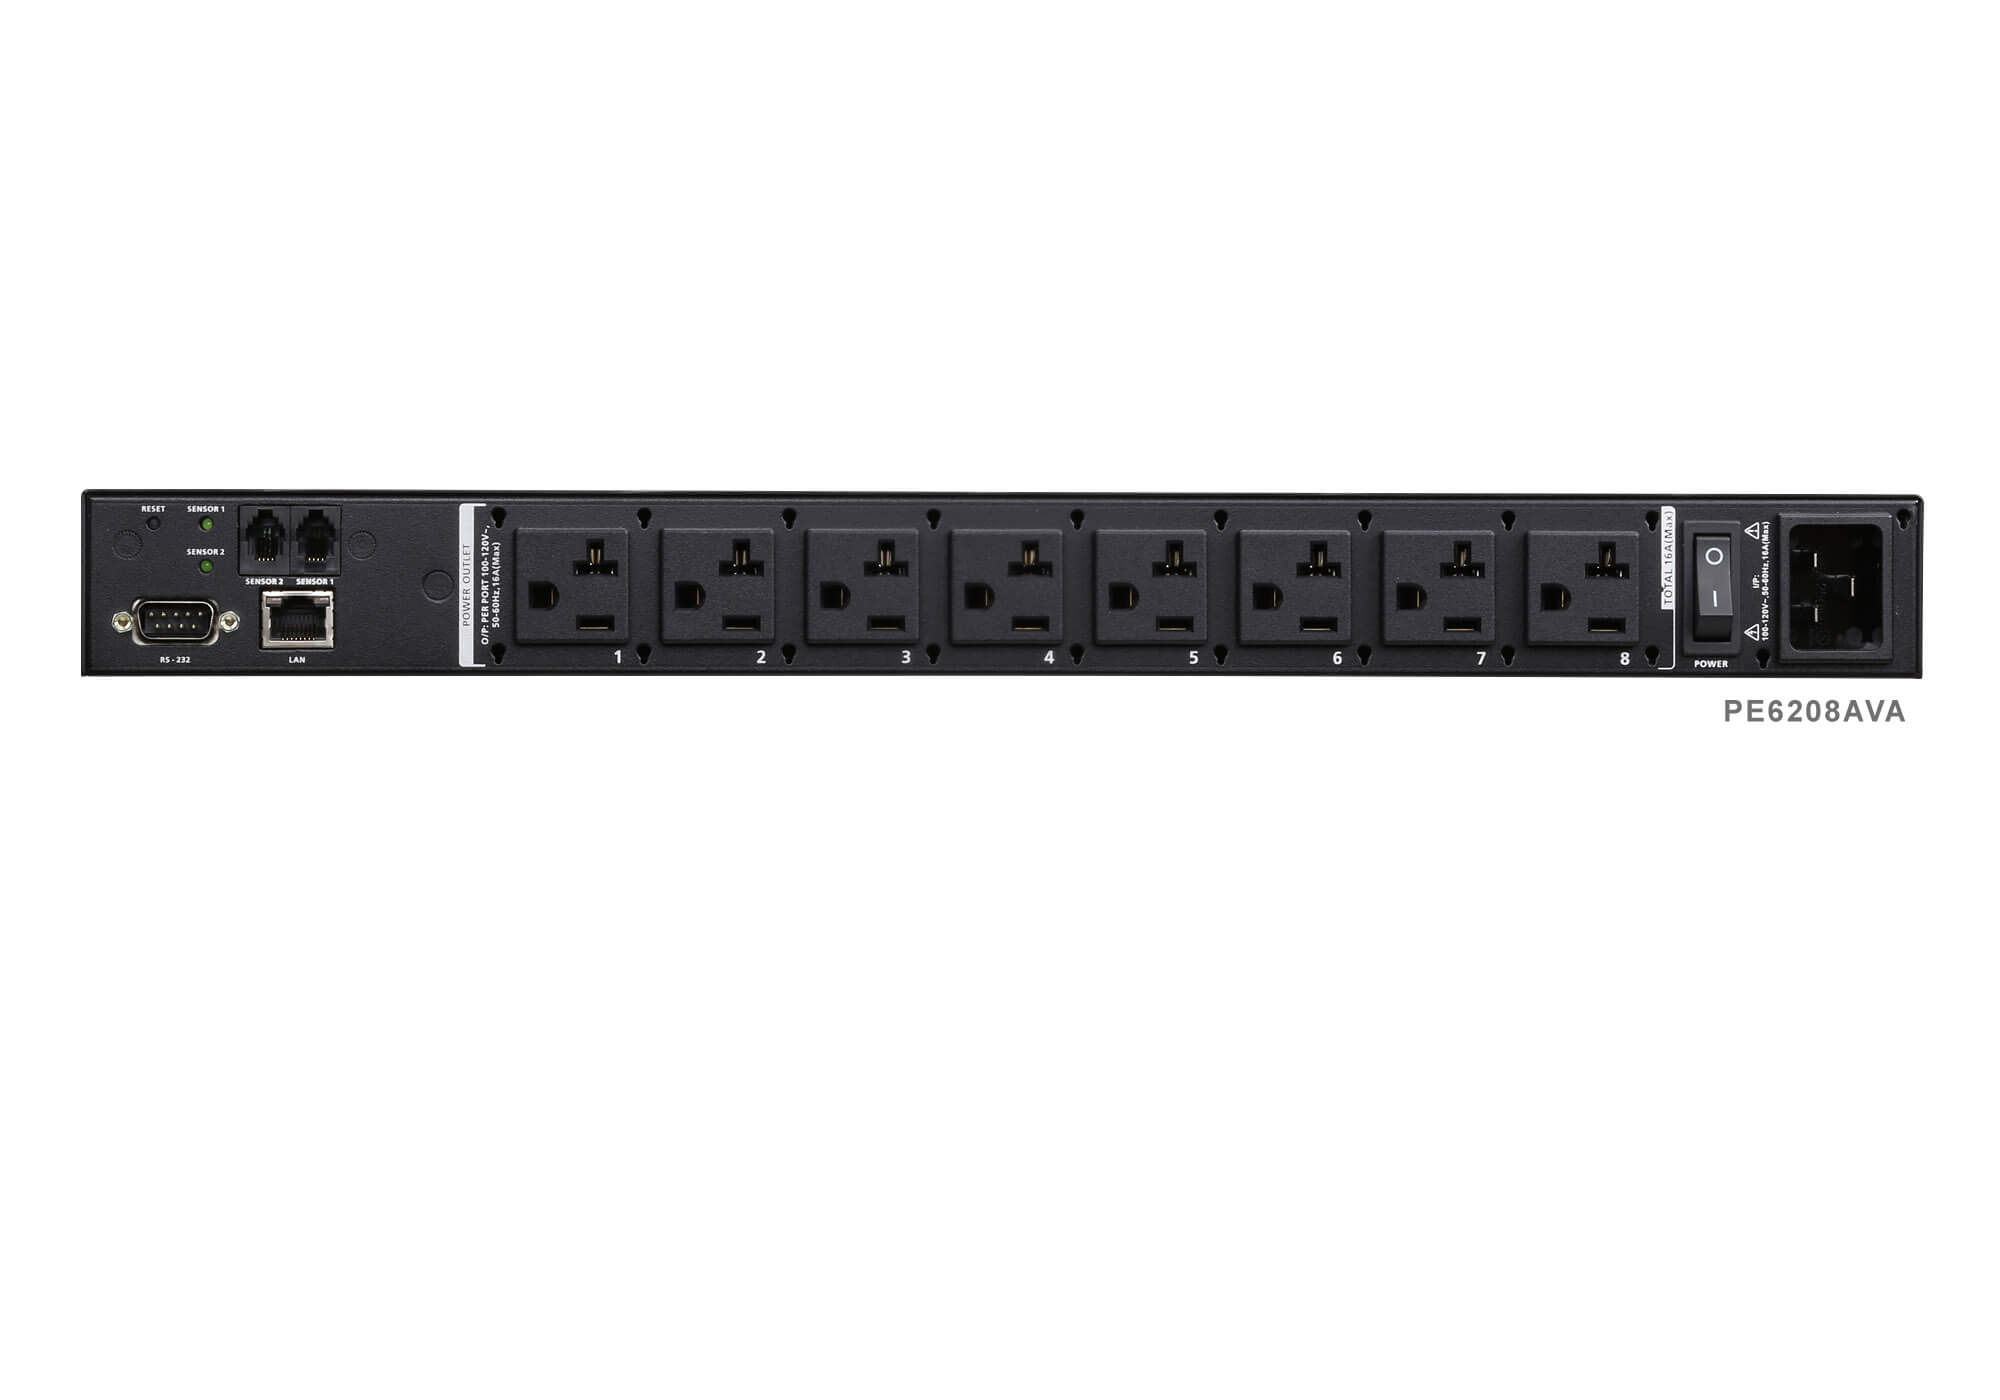 8 Outlet Eco Pdu Pe6208av Aten Switched Patch Panel Diagram Moreover Cat 5 Wiring Phone Jack Further 2